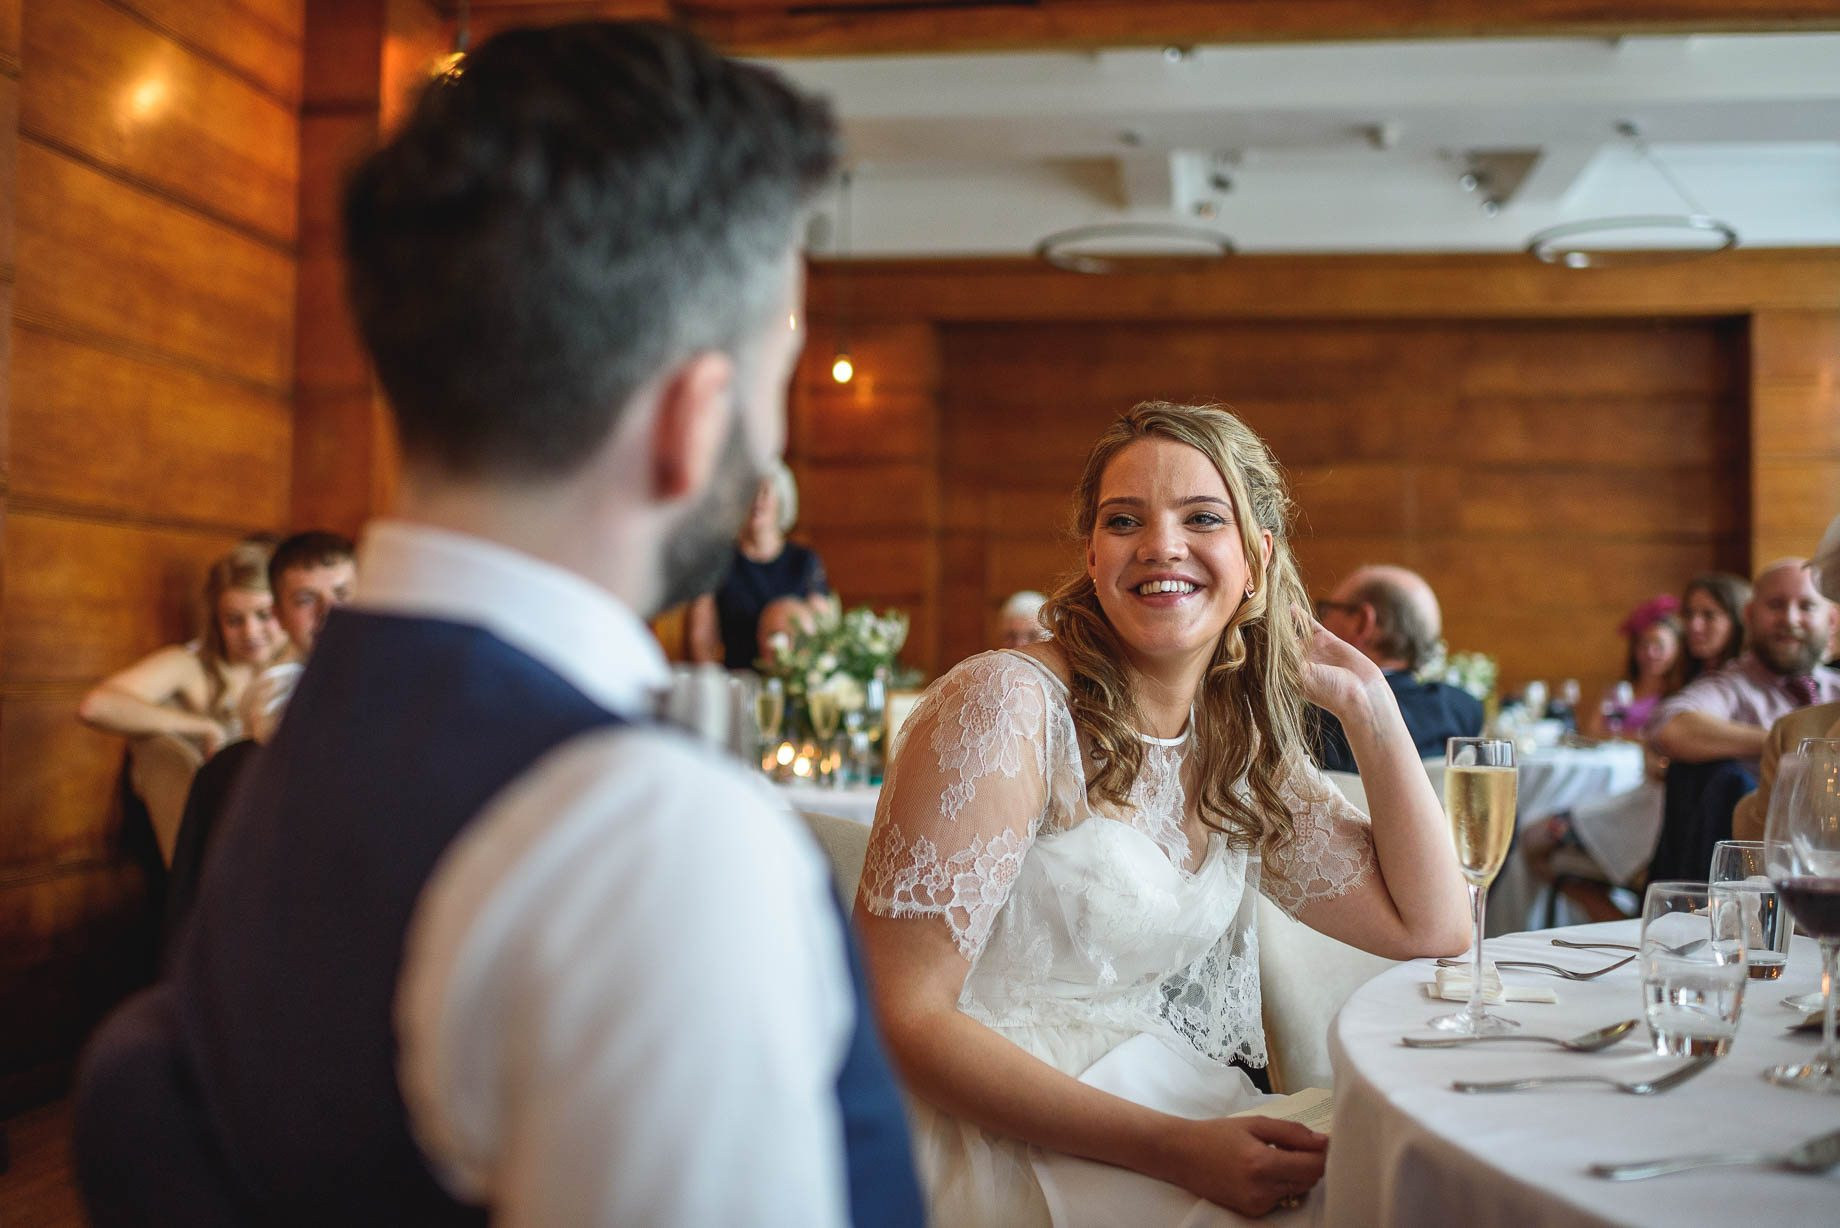 London Wedding Photography - Guy Collier Photography - LJ + Russell (107 of 155)